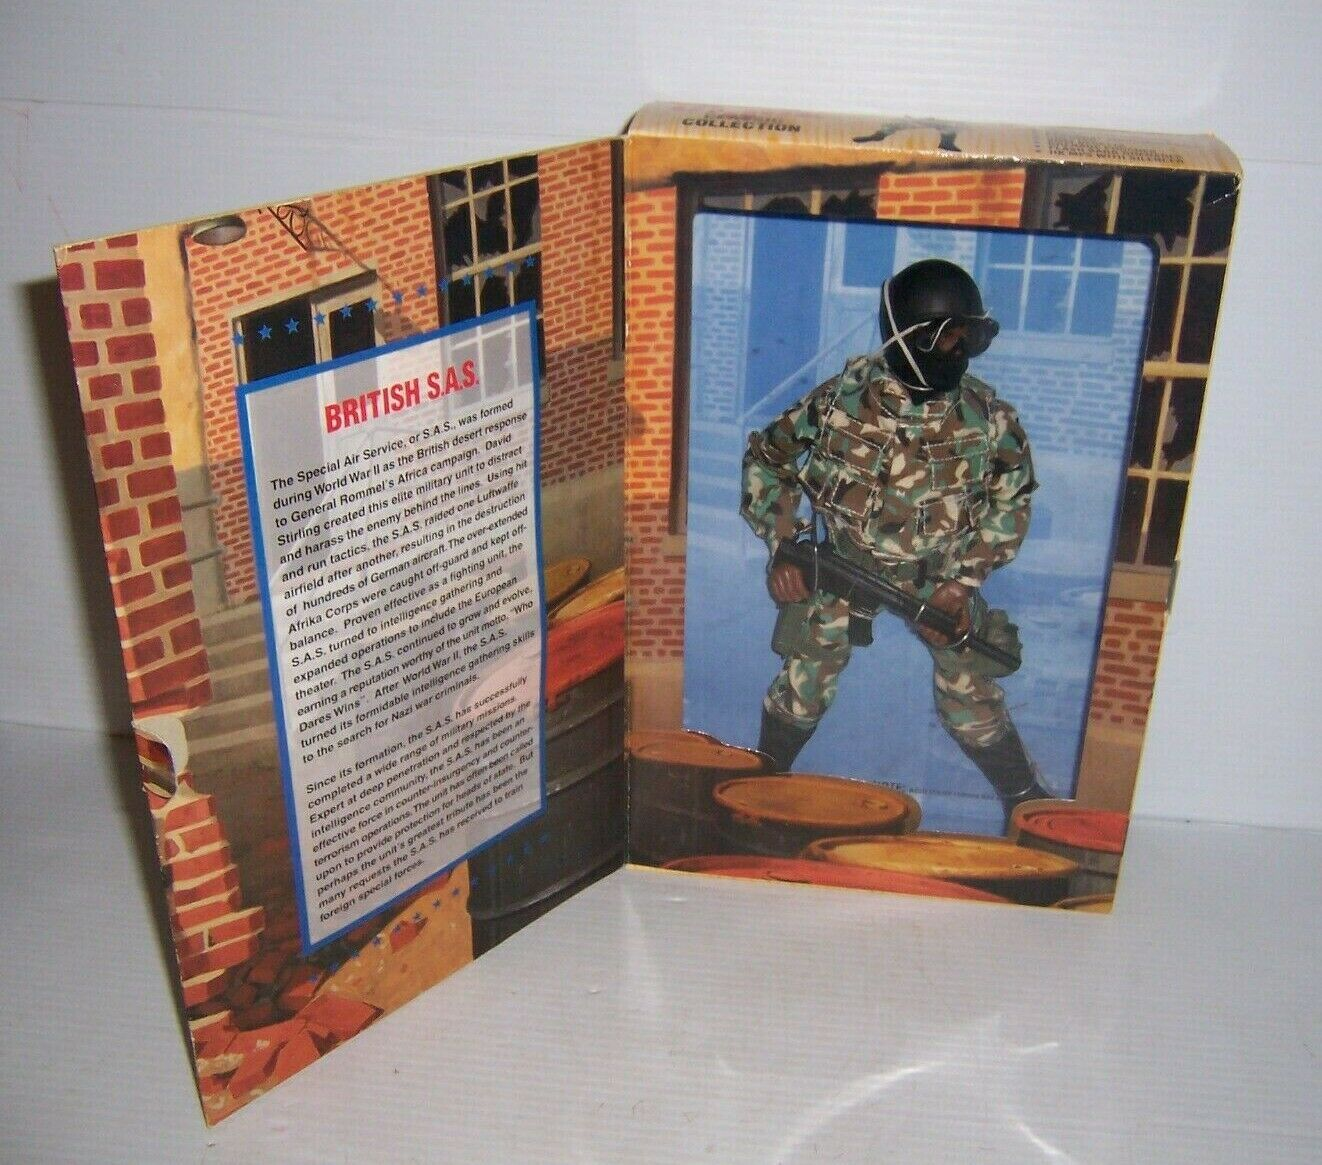 1996 GI Joe classeeic Collection Limited Addition British  S.A.S. cifra nuovo  consegna rapida